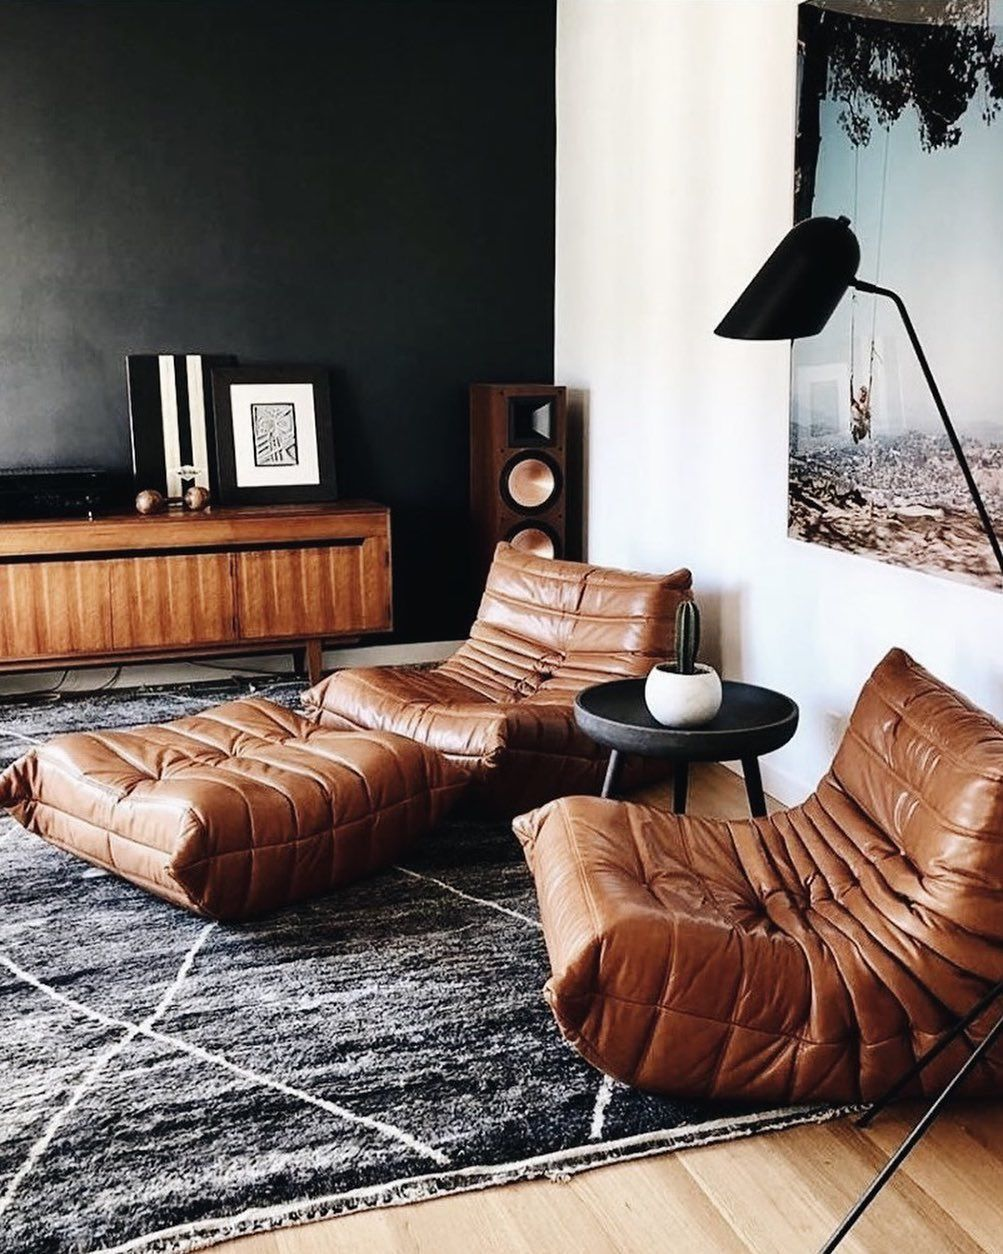 Design Art Architecture On Instagram Design Classic Togo By Michel Ducaroy For Ligne Roset Sofa Togo Ligneroset Des Ligne Roset Sofa Home Decor Interior